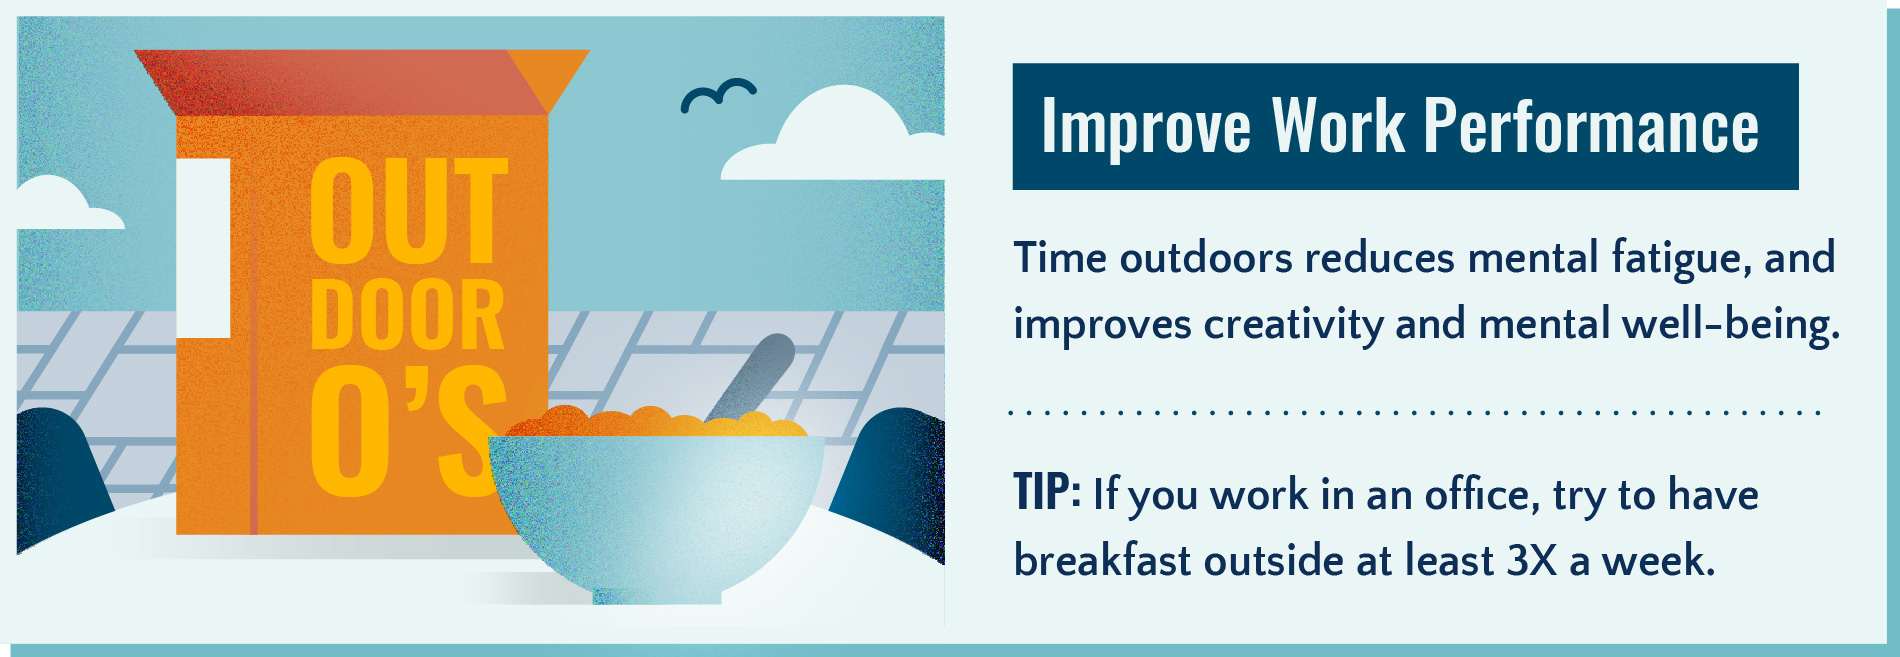 Improve Work Performance by spending time outside